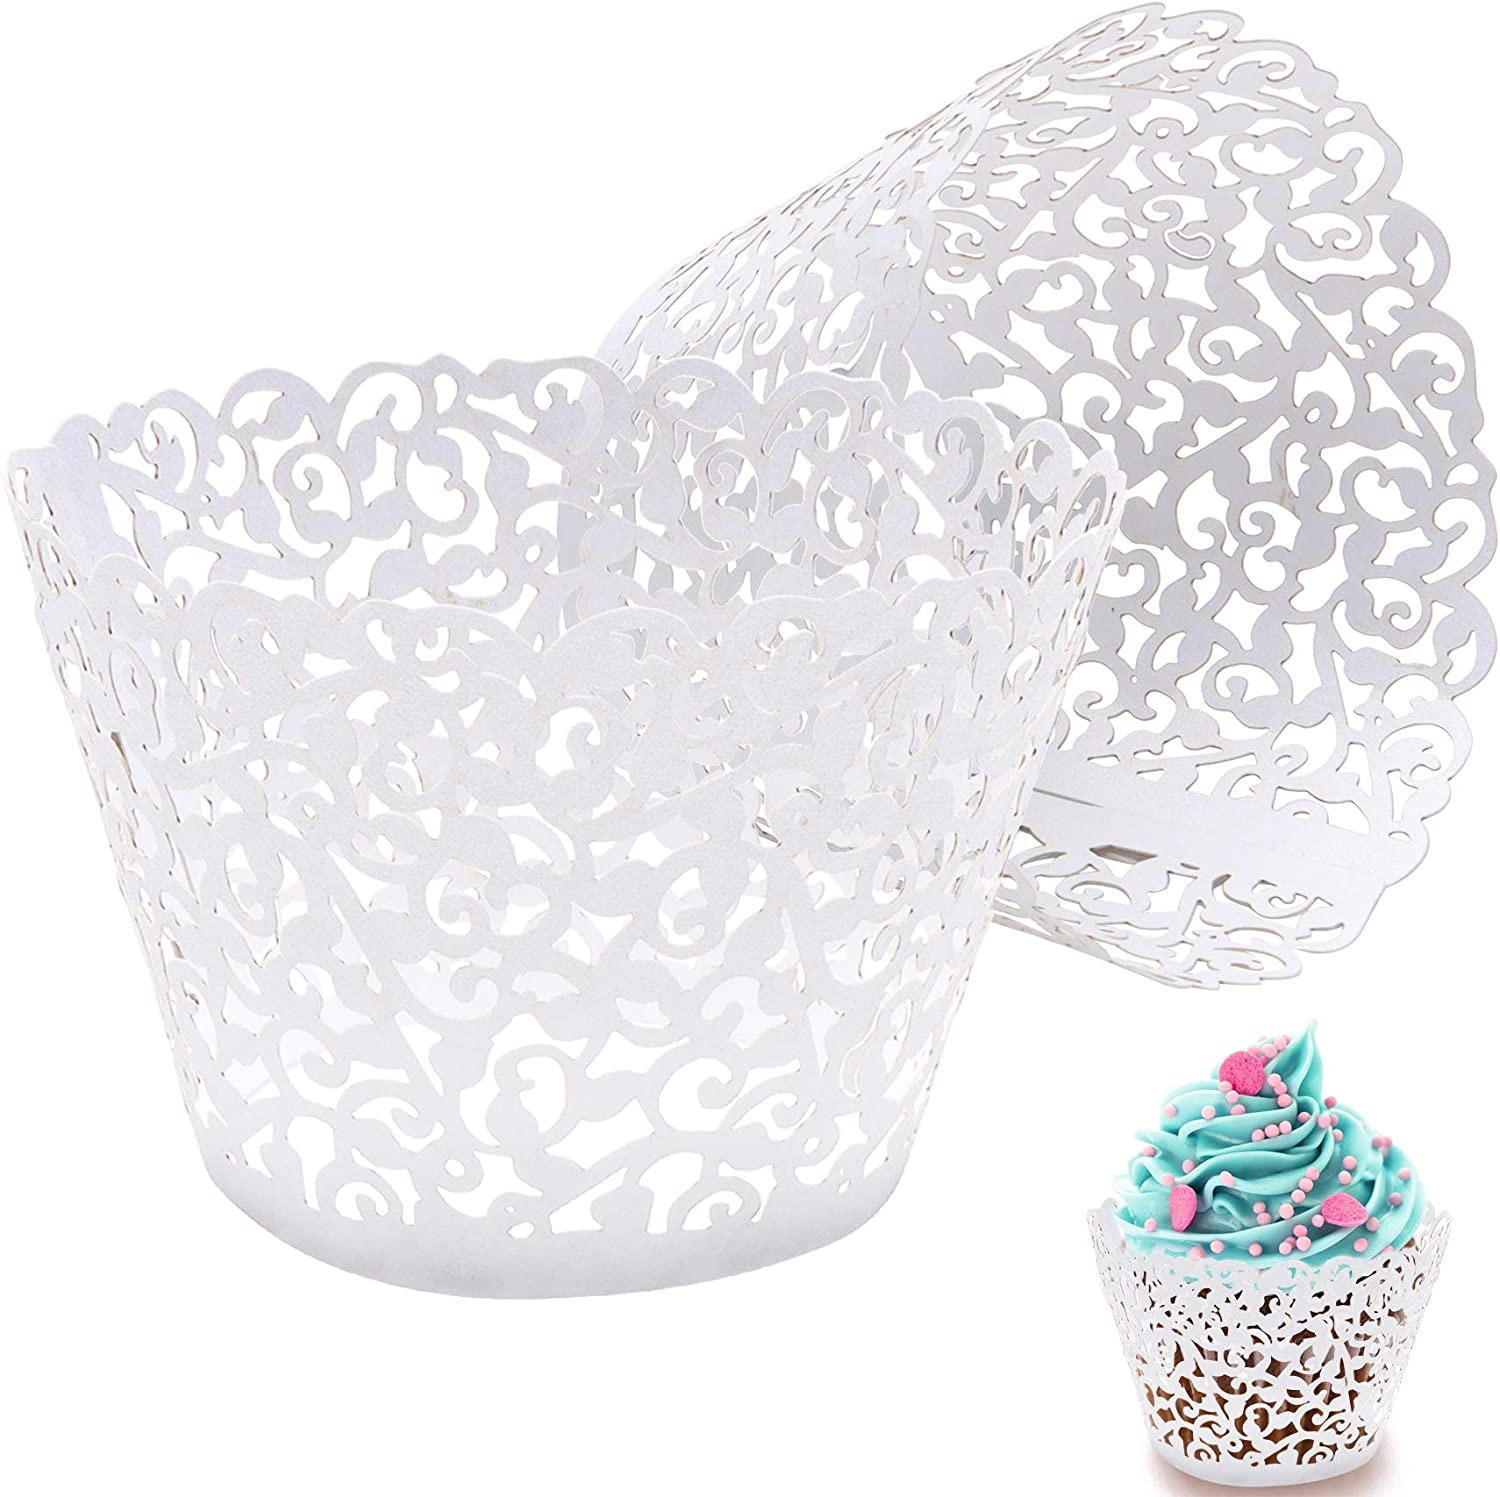 50pcs, pink Cupcake Wrappers Lace Cupcake Liners Laser Cut Cupcake Papers Cupcake Cups Cases for Wedding//Birthday Party Decoration